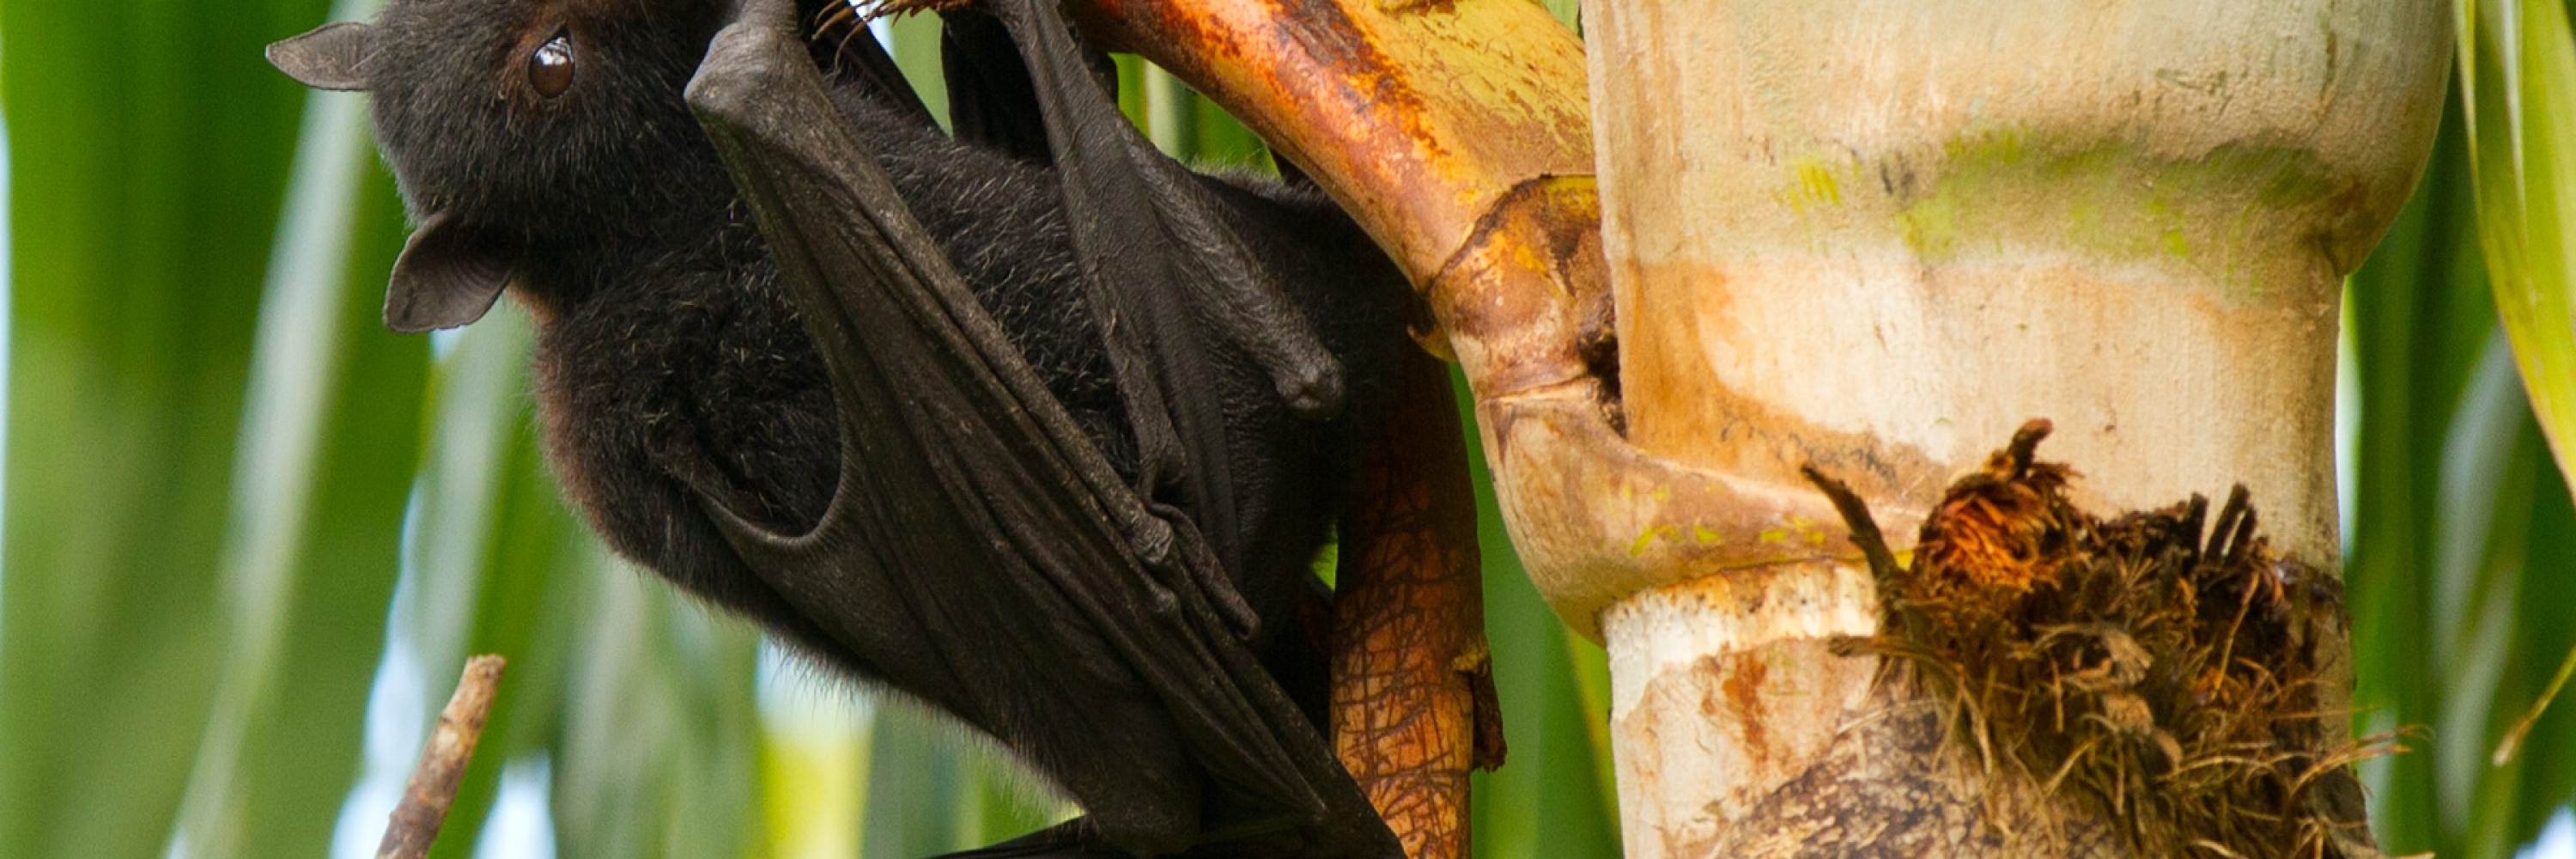 Black_Flying_Fox_eating_palm_tree